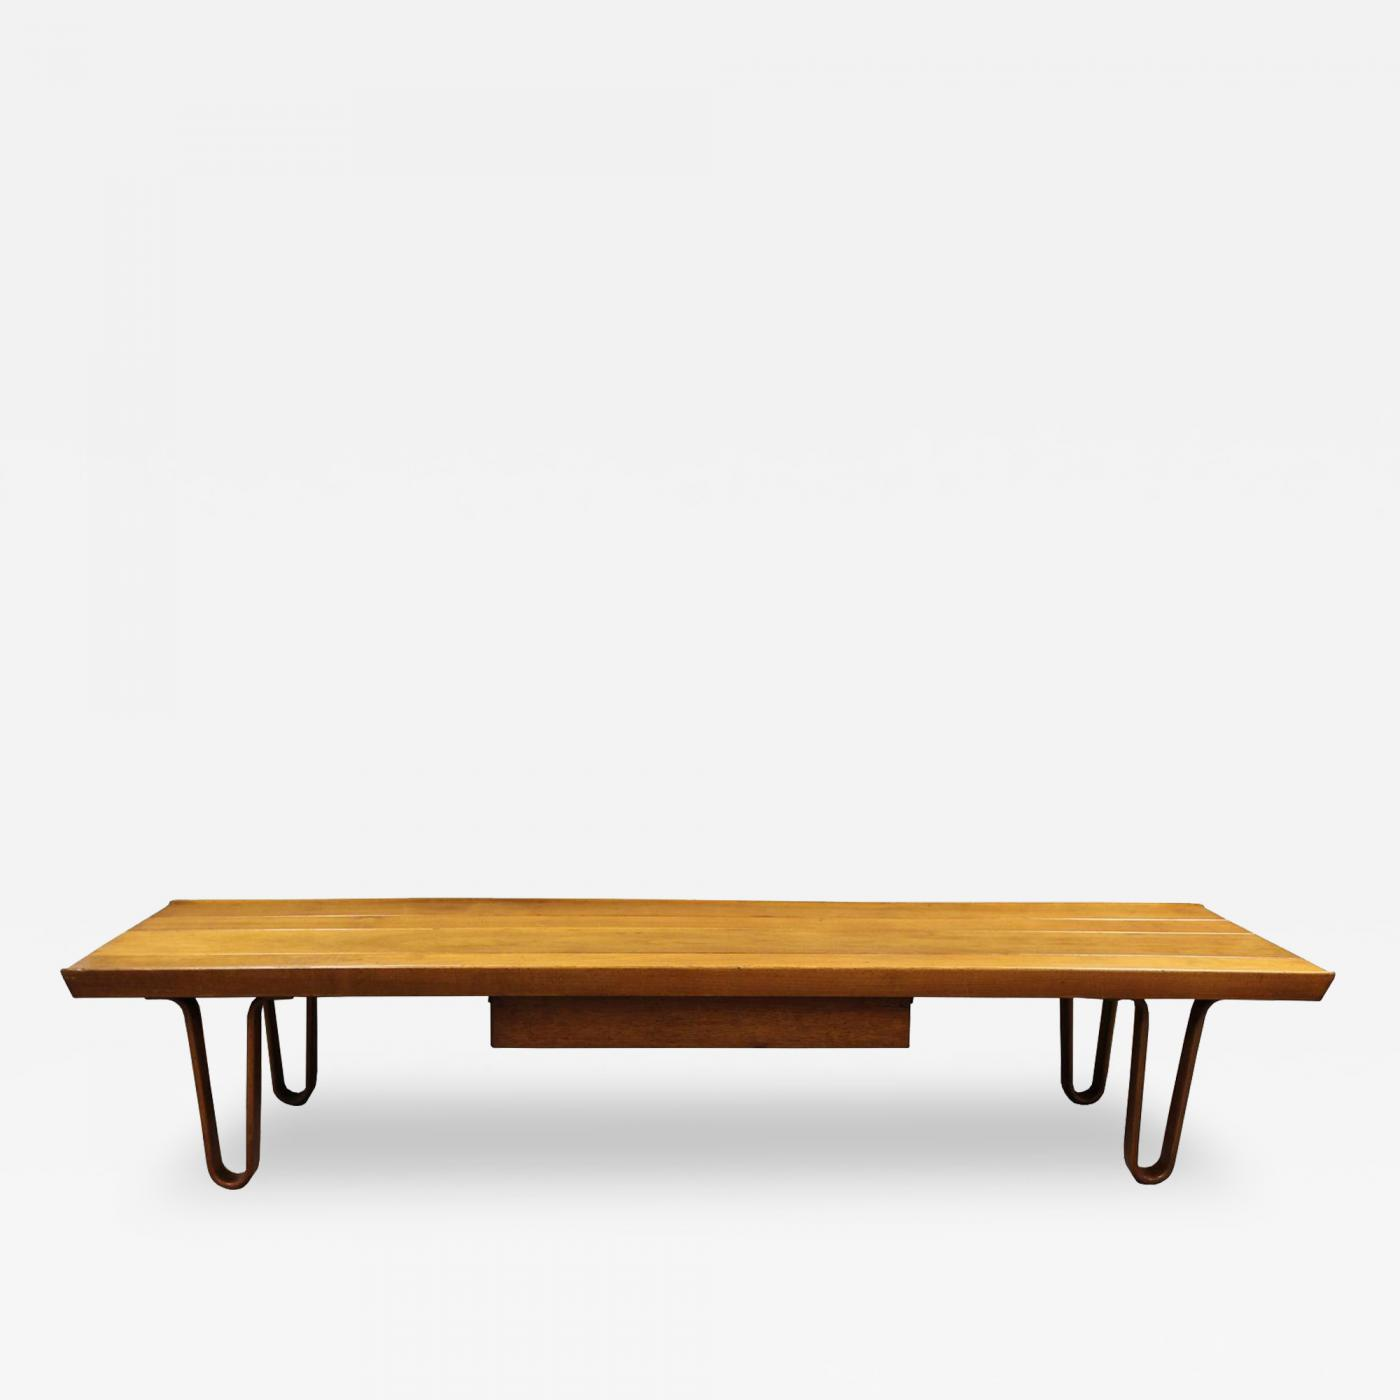 Edward Wormley Long John Bench or Coffee Table by Edward Wormley